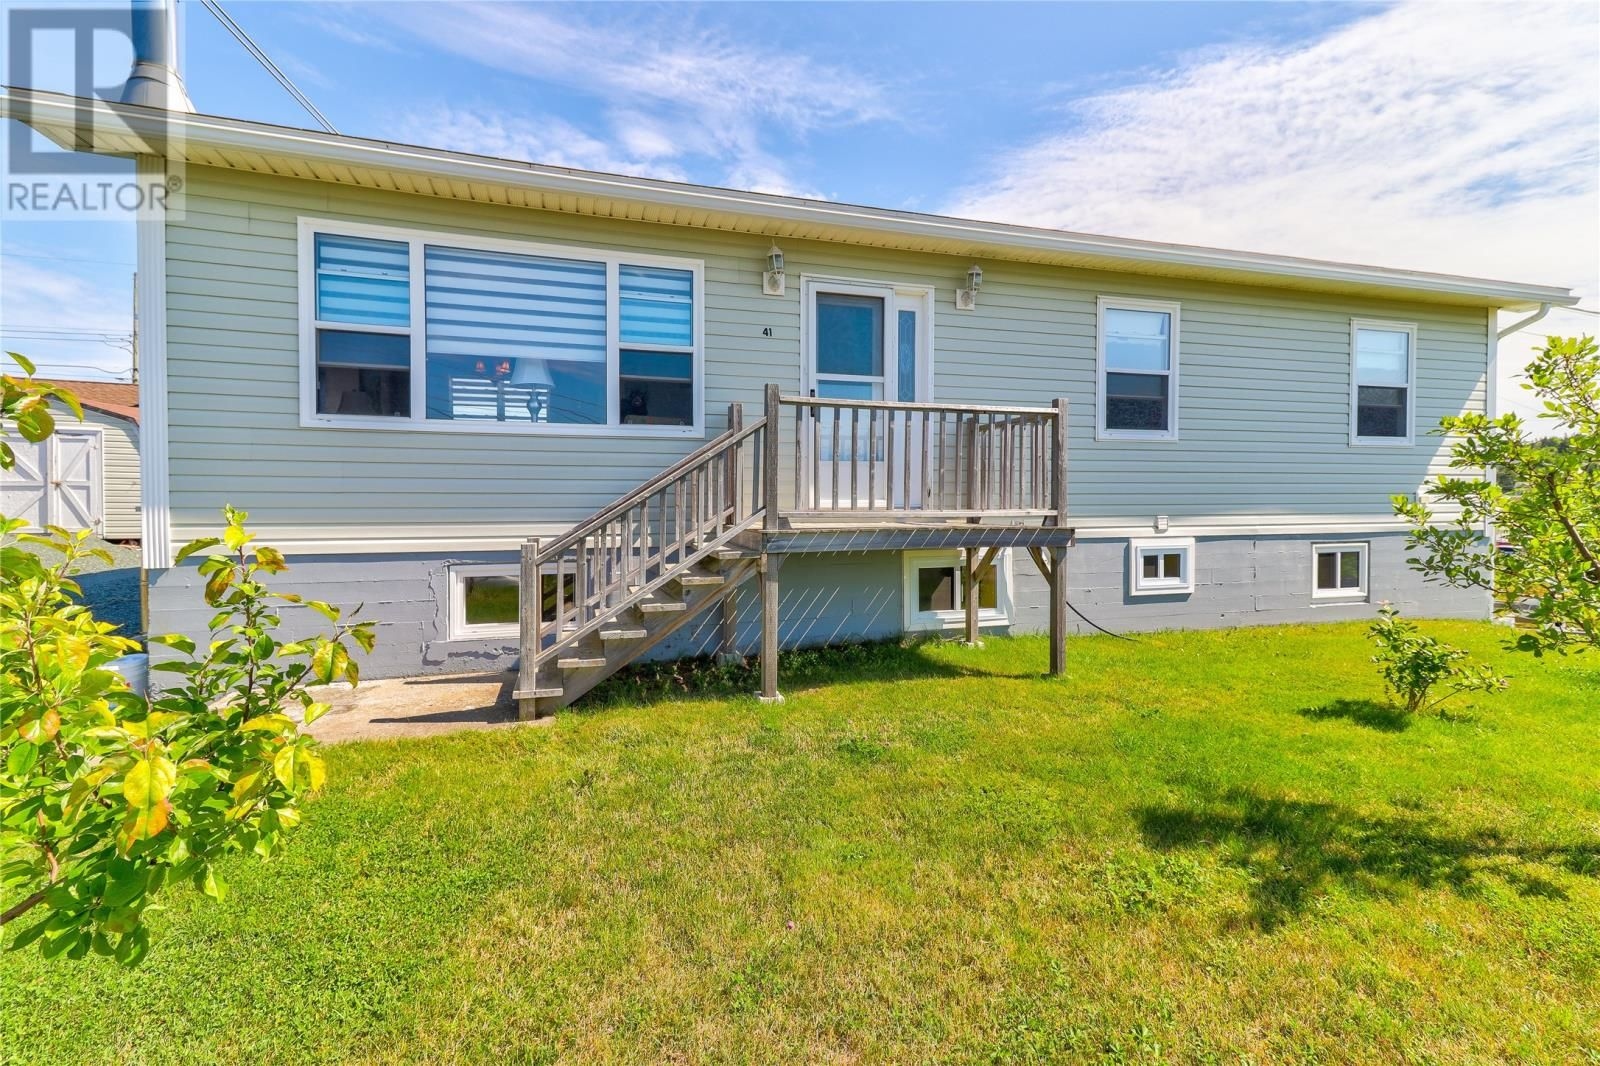 Main Photo: 41 Dunns Hill Road in Conception Bay South: House for sale : MLS®# 1237496